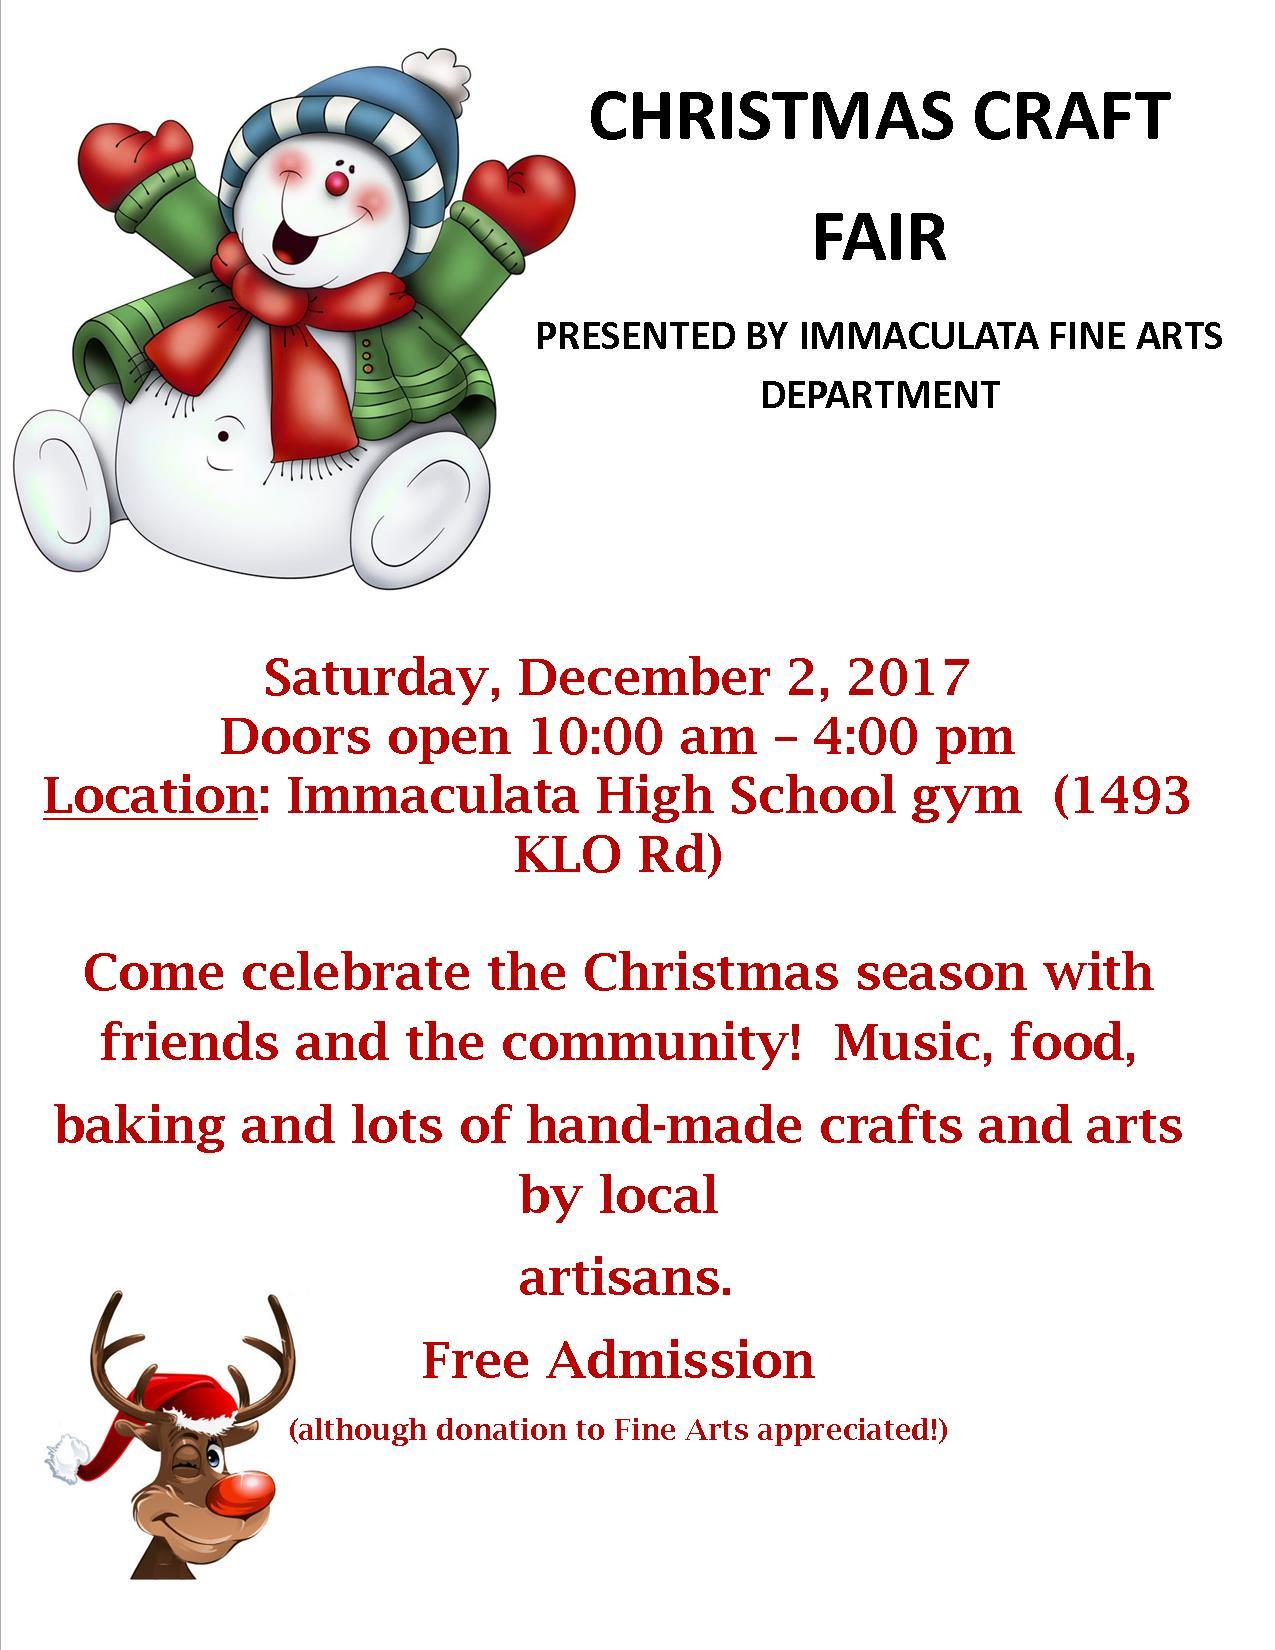 COUNTDOWN TO OUR CHRISTMAS CRAFT FAIR!!